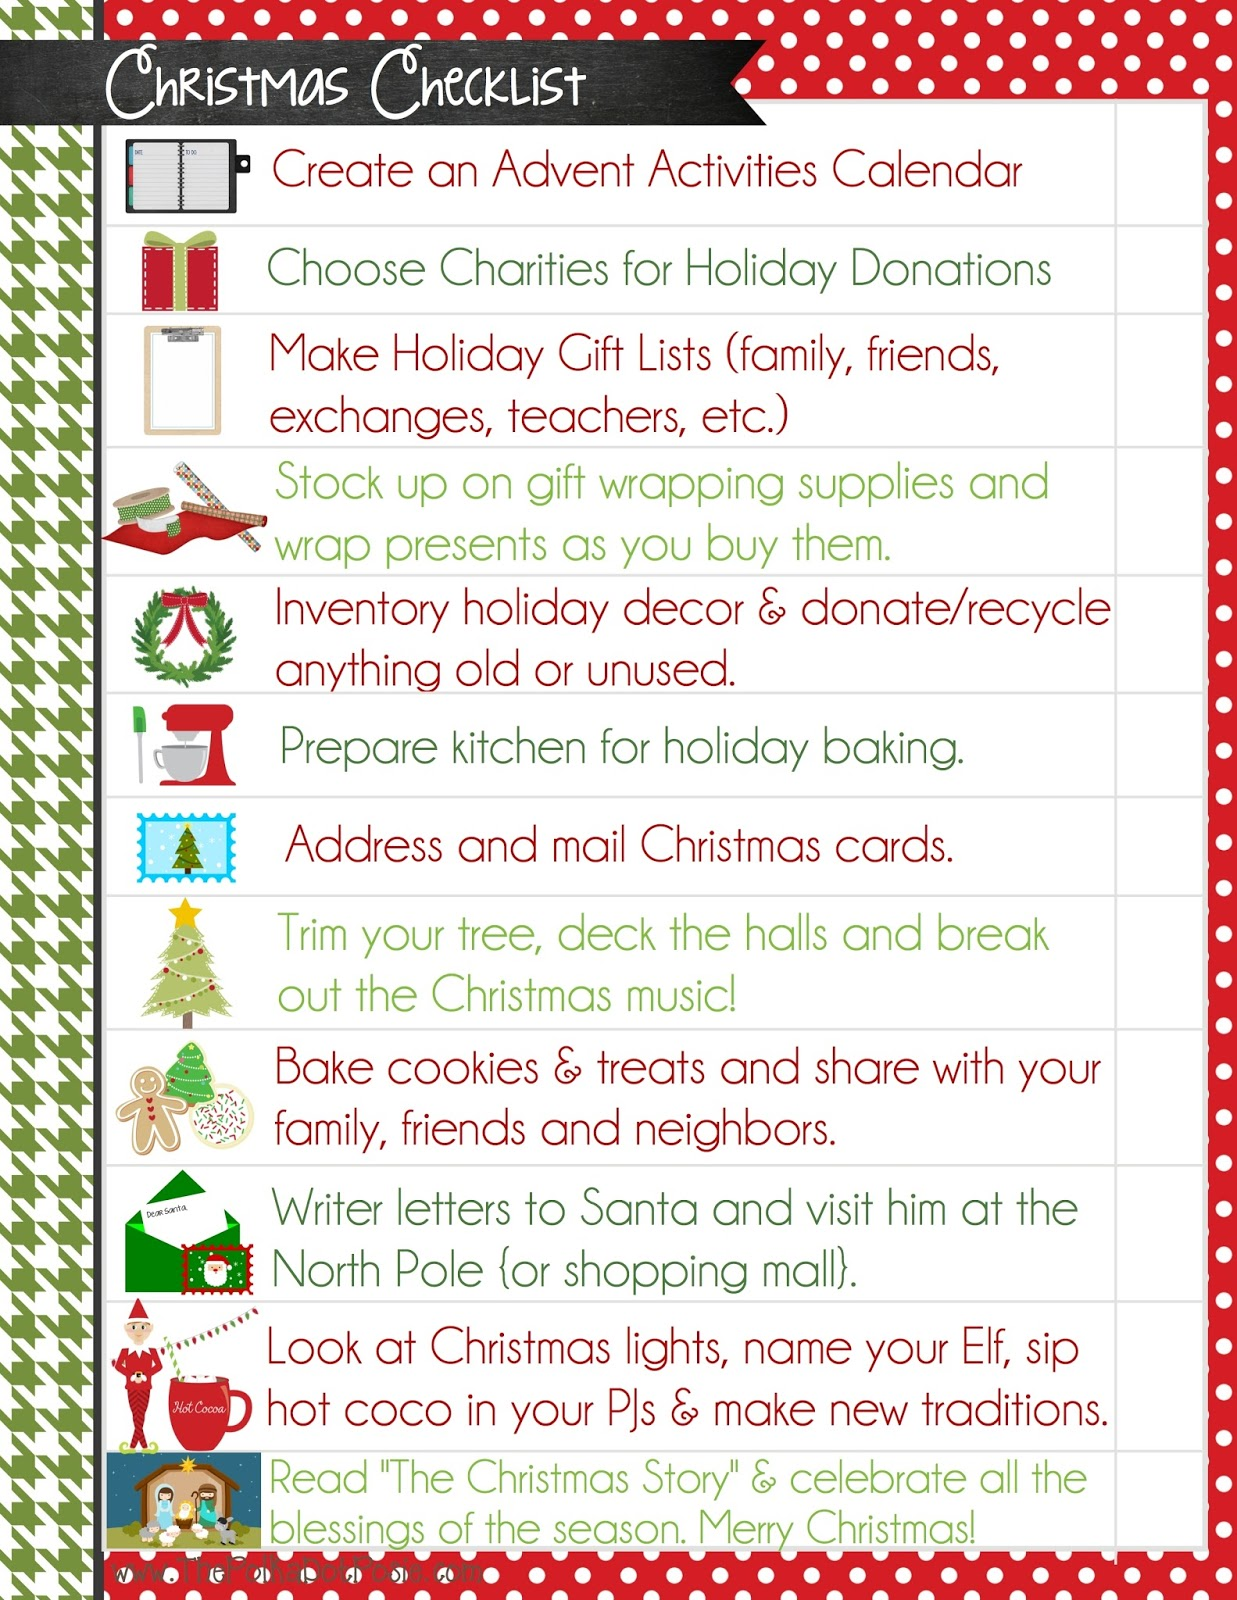 The Polka Dot Posie ChristmasBinderPrintables 019 All P4html Christmas Checklist  Template Christmas Checklist Template